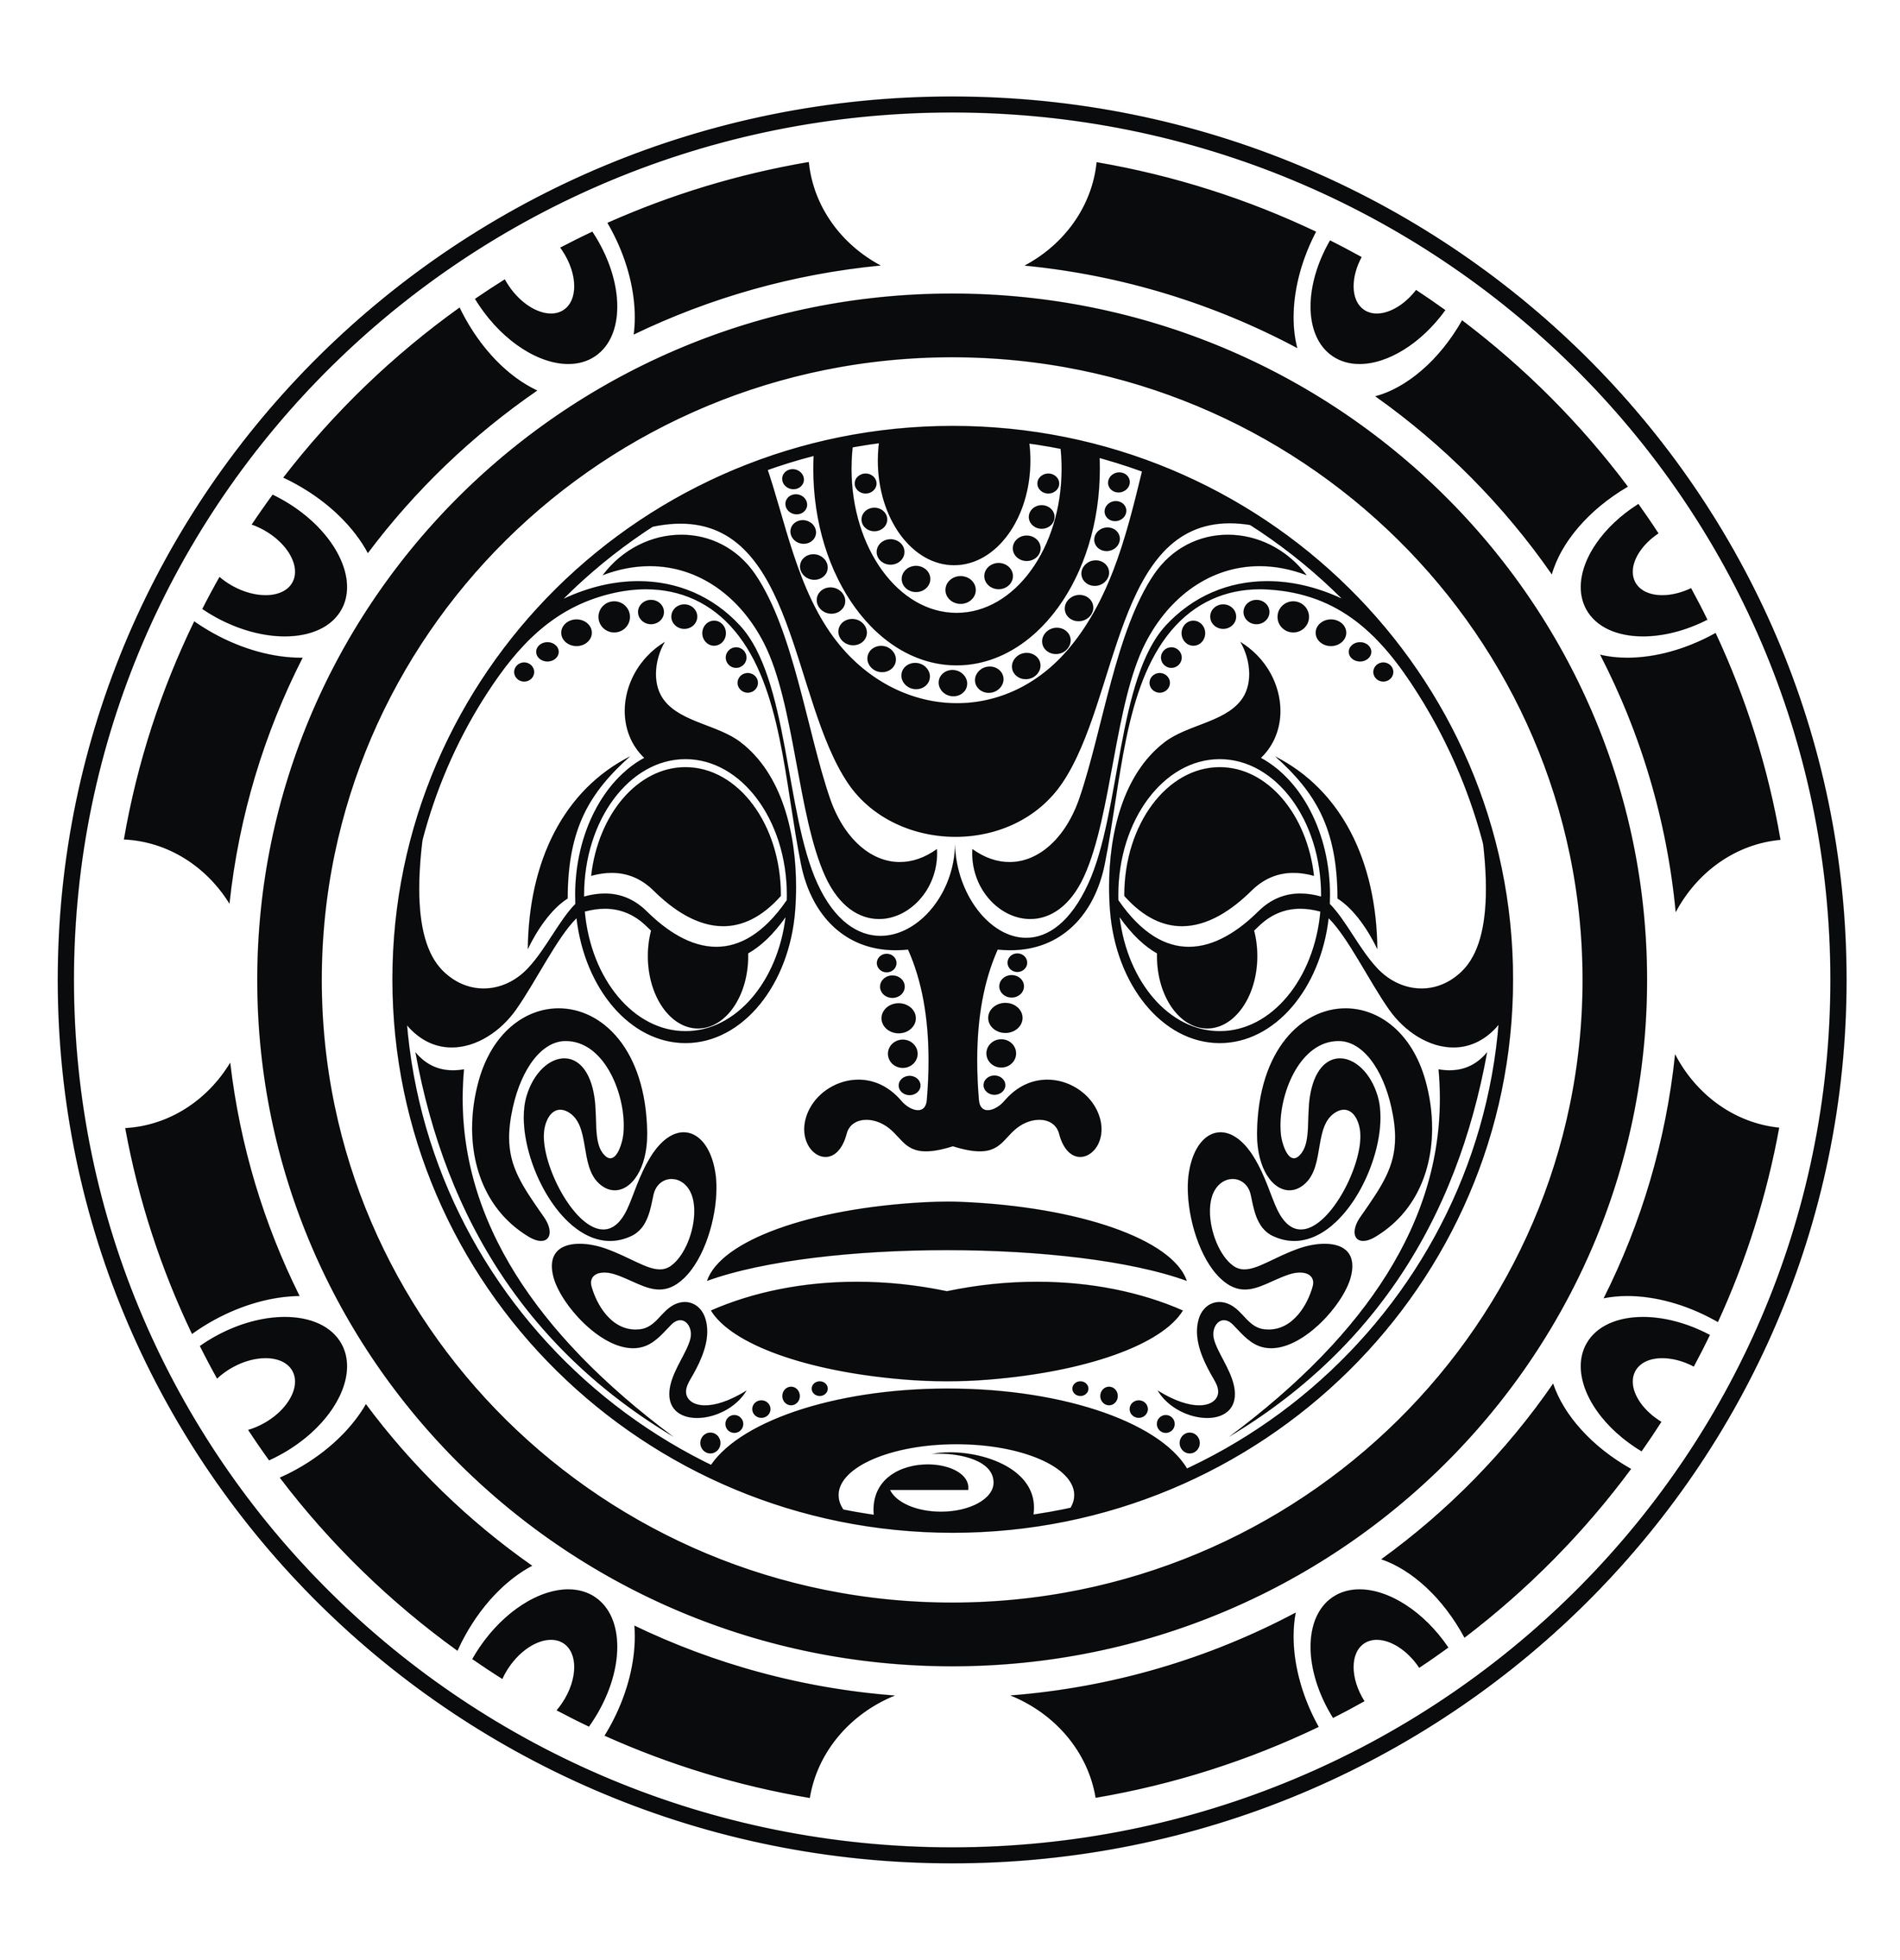 Tongan tattoos with meanings 12 tribal sun tattoos meanings tongan tattoos with meanings 12 tribal sun tattoos meanings and symbols buycottarizona